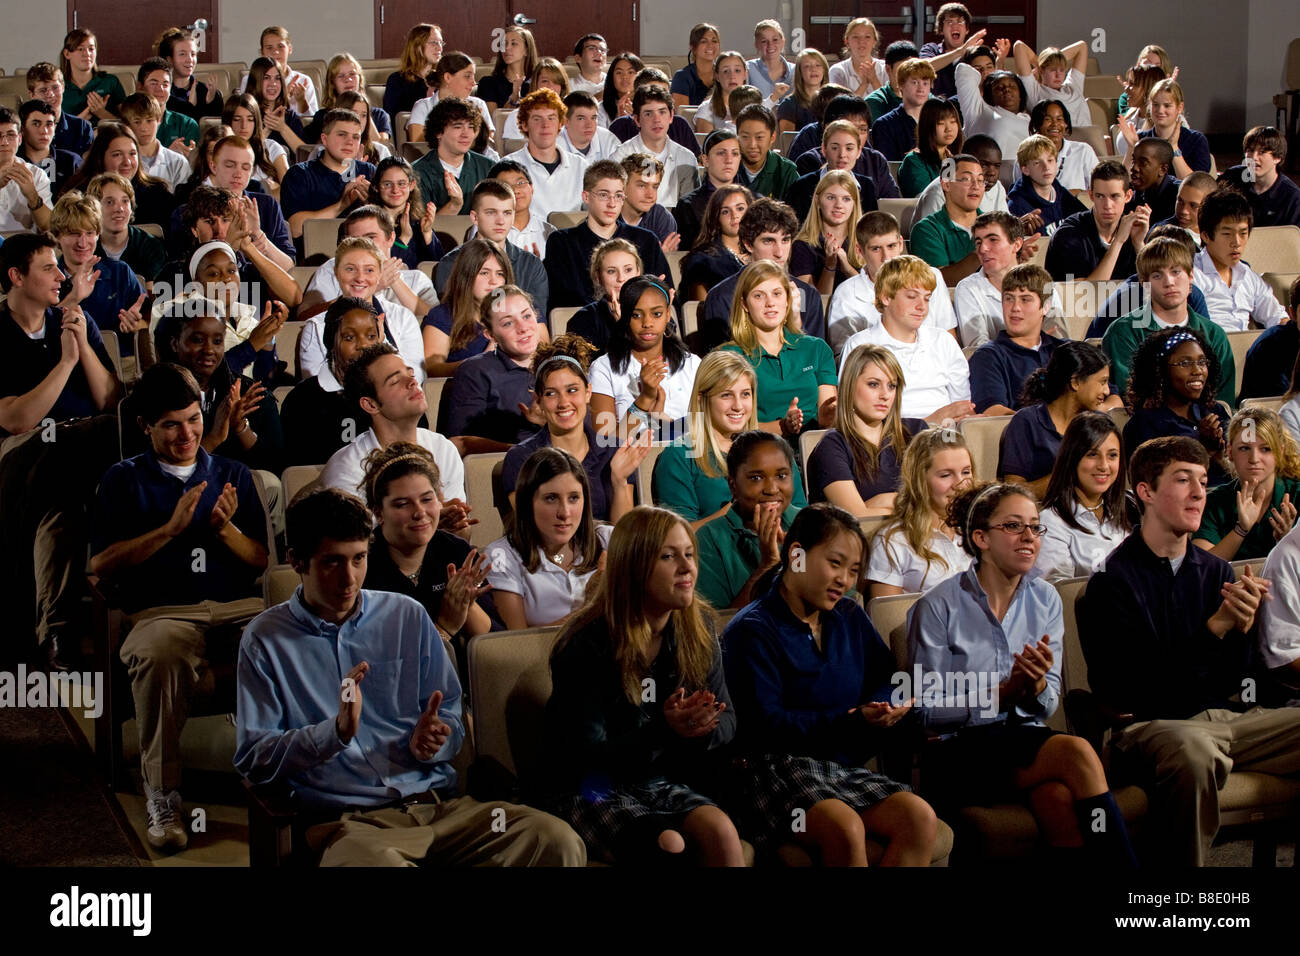 High school and middle school students seated in an auditorium. - Stock Image